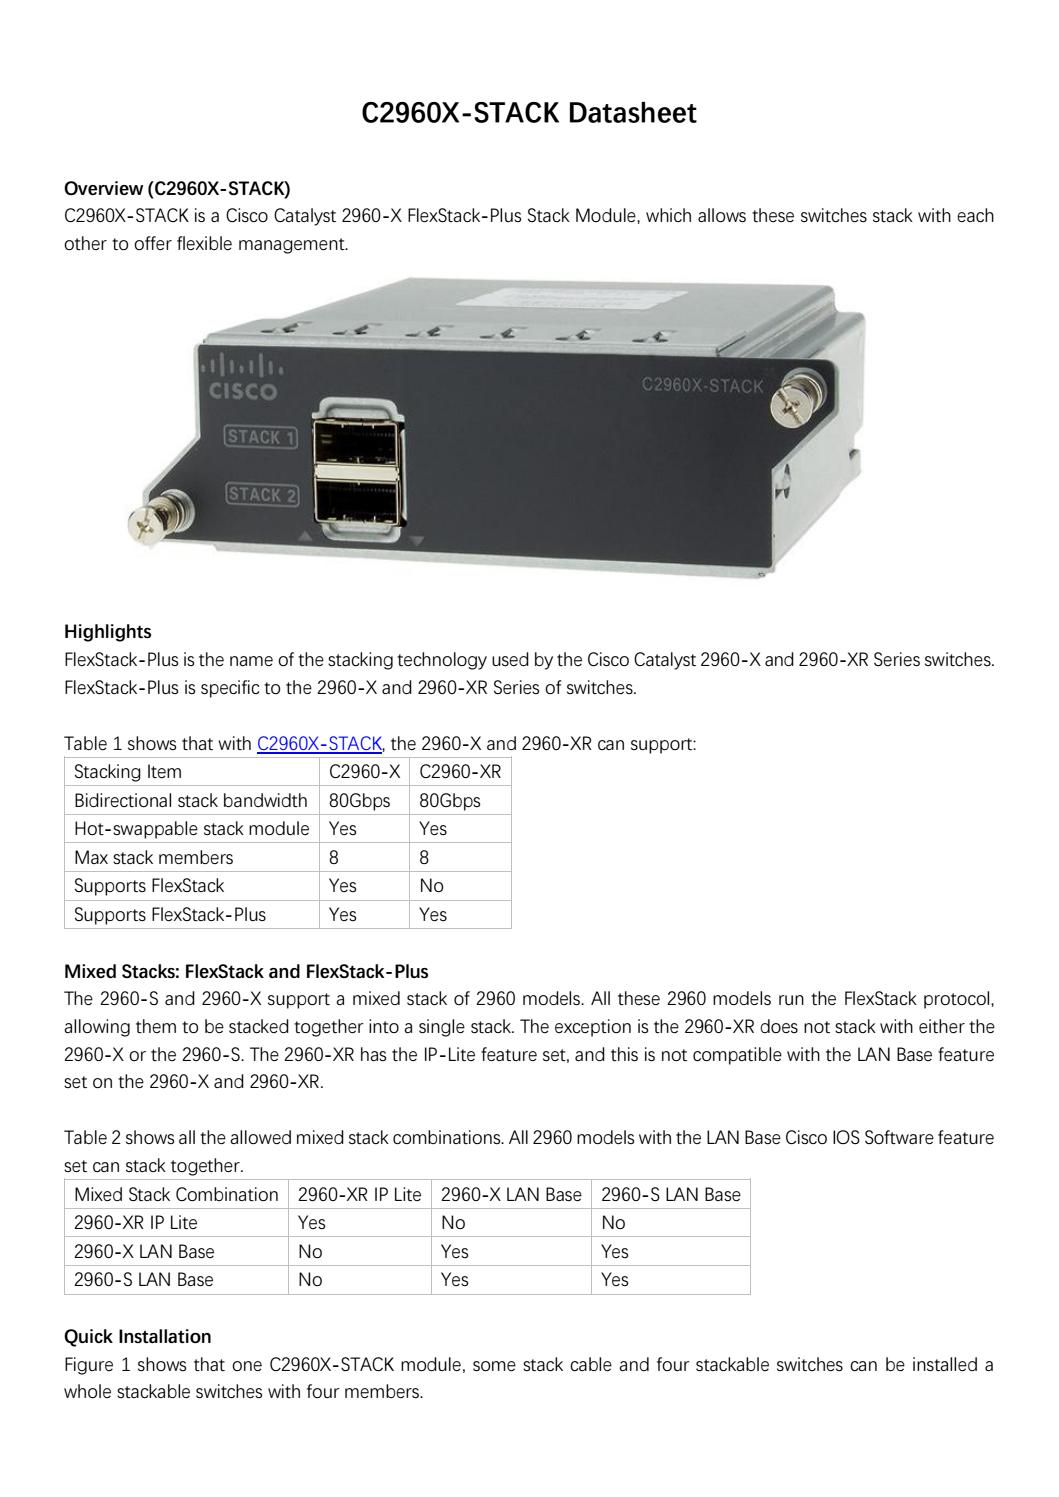 Cisco catalyst 2960 x flexstack plus stack module datasheet by